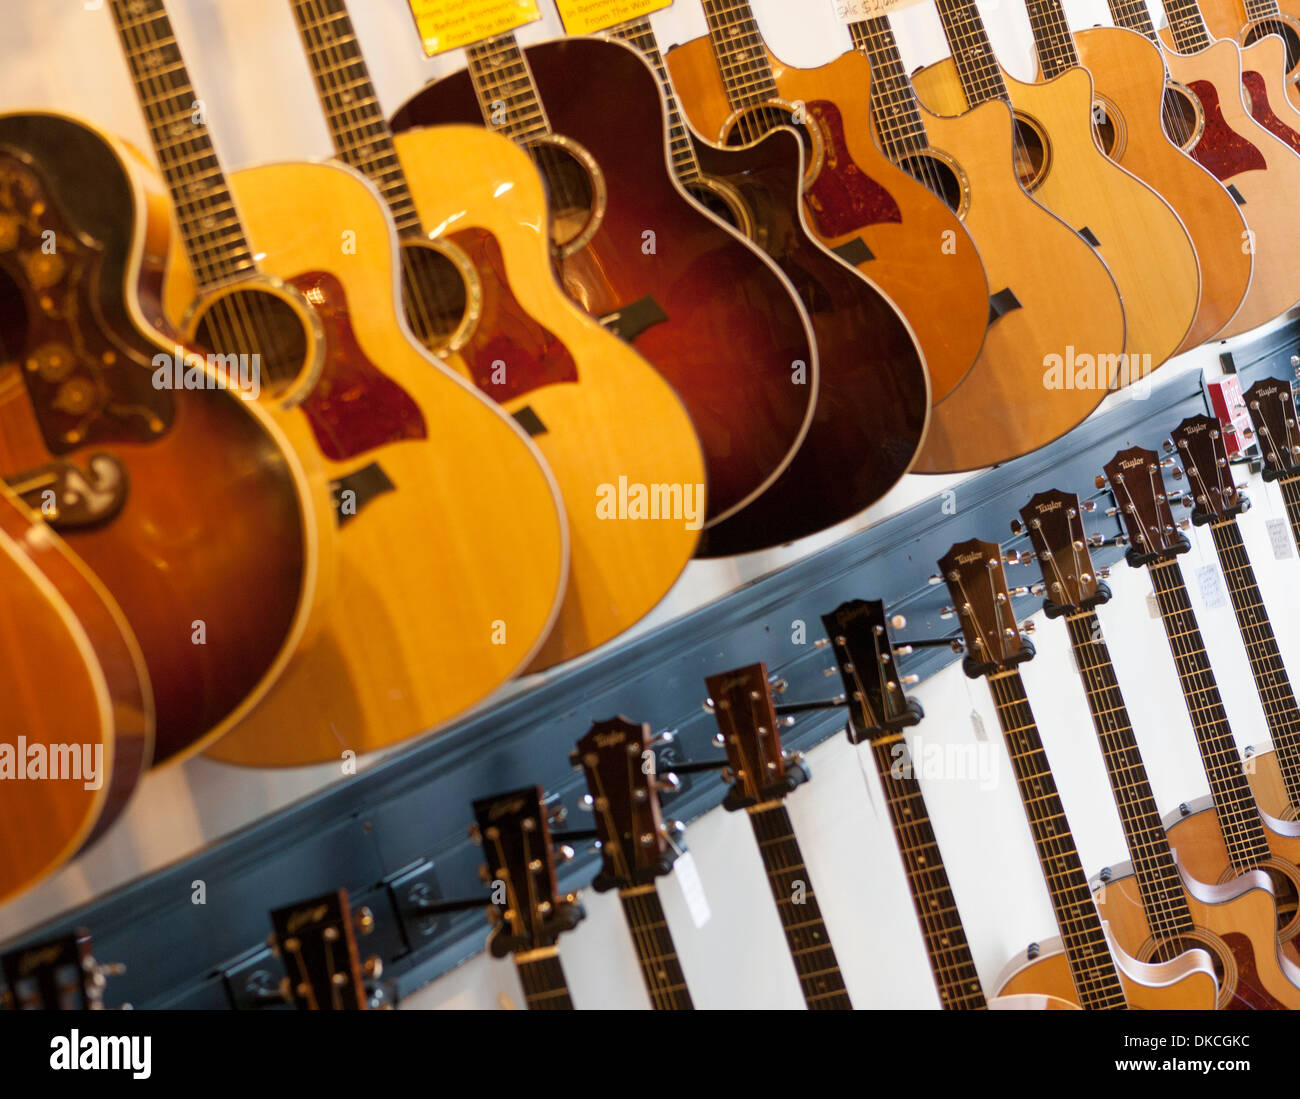 Many used acoustic guitars for sale in a shop - Stock Image